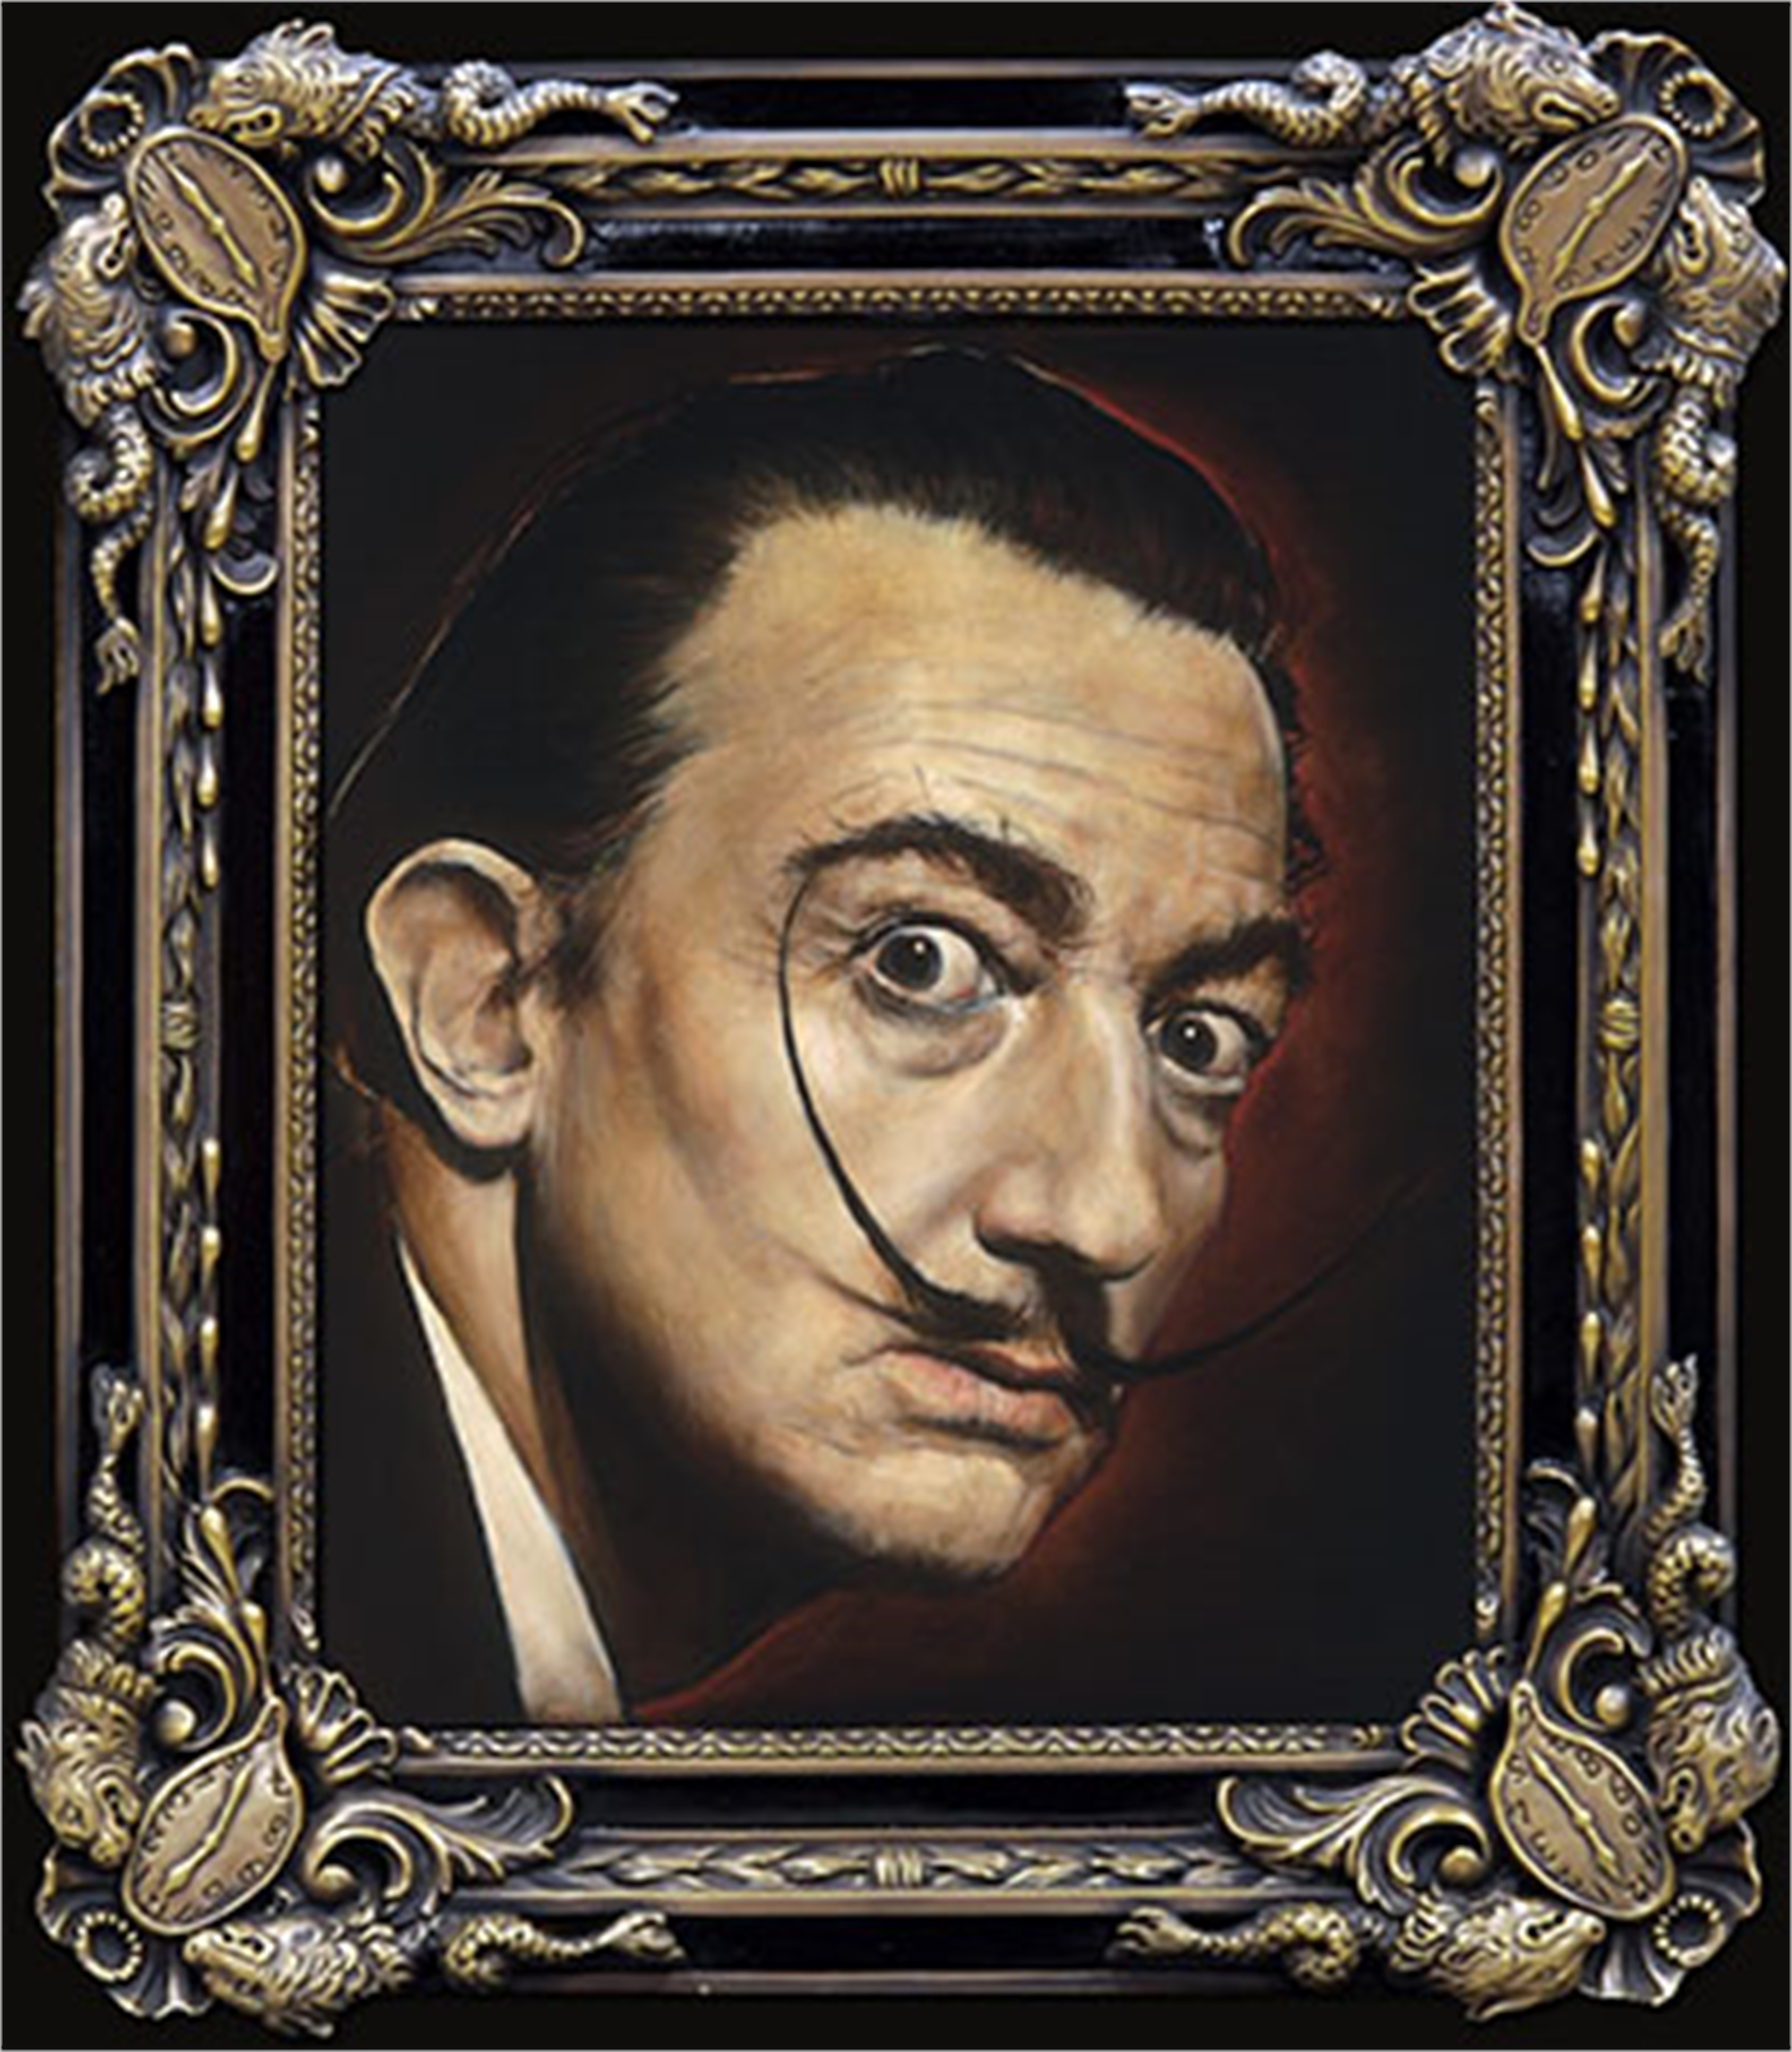 Surreal Dali by Bill Mack